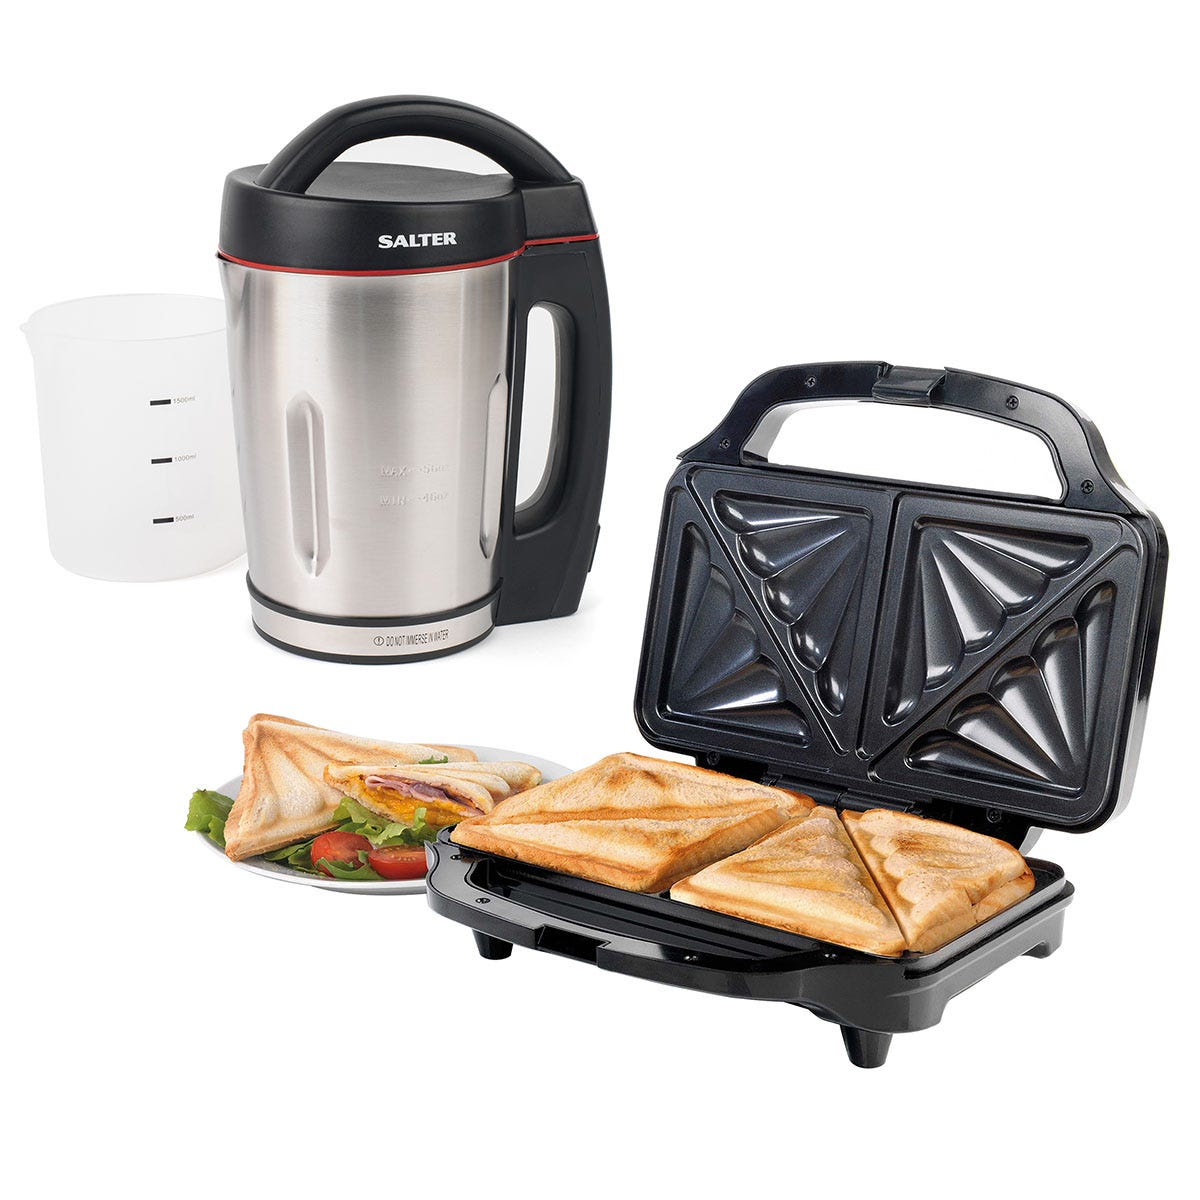 Salter COMBO-6806 1.6L Electric Soup Maker and XL Deep-Fill Sandwich Toaster Bundle - Black and Silver